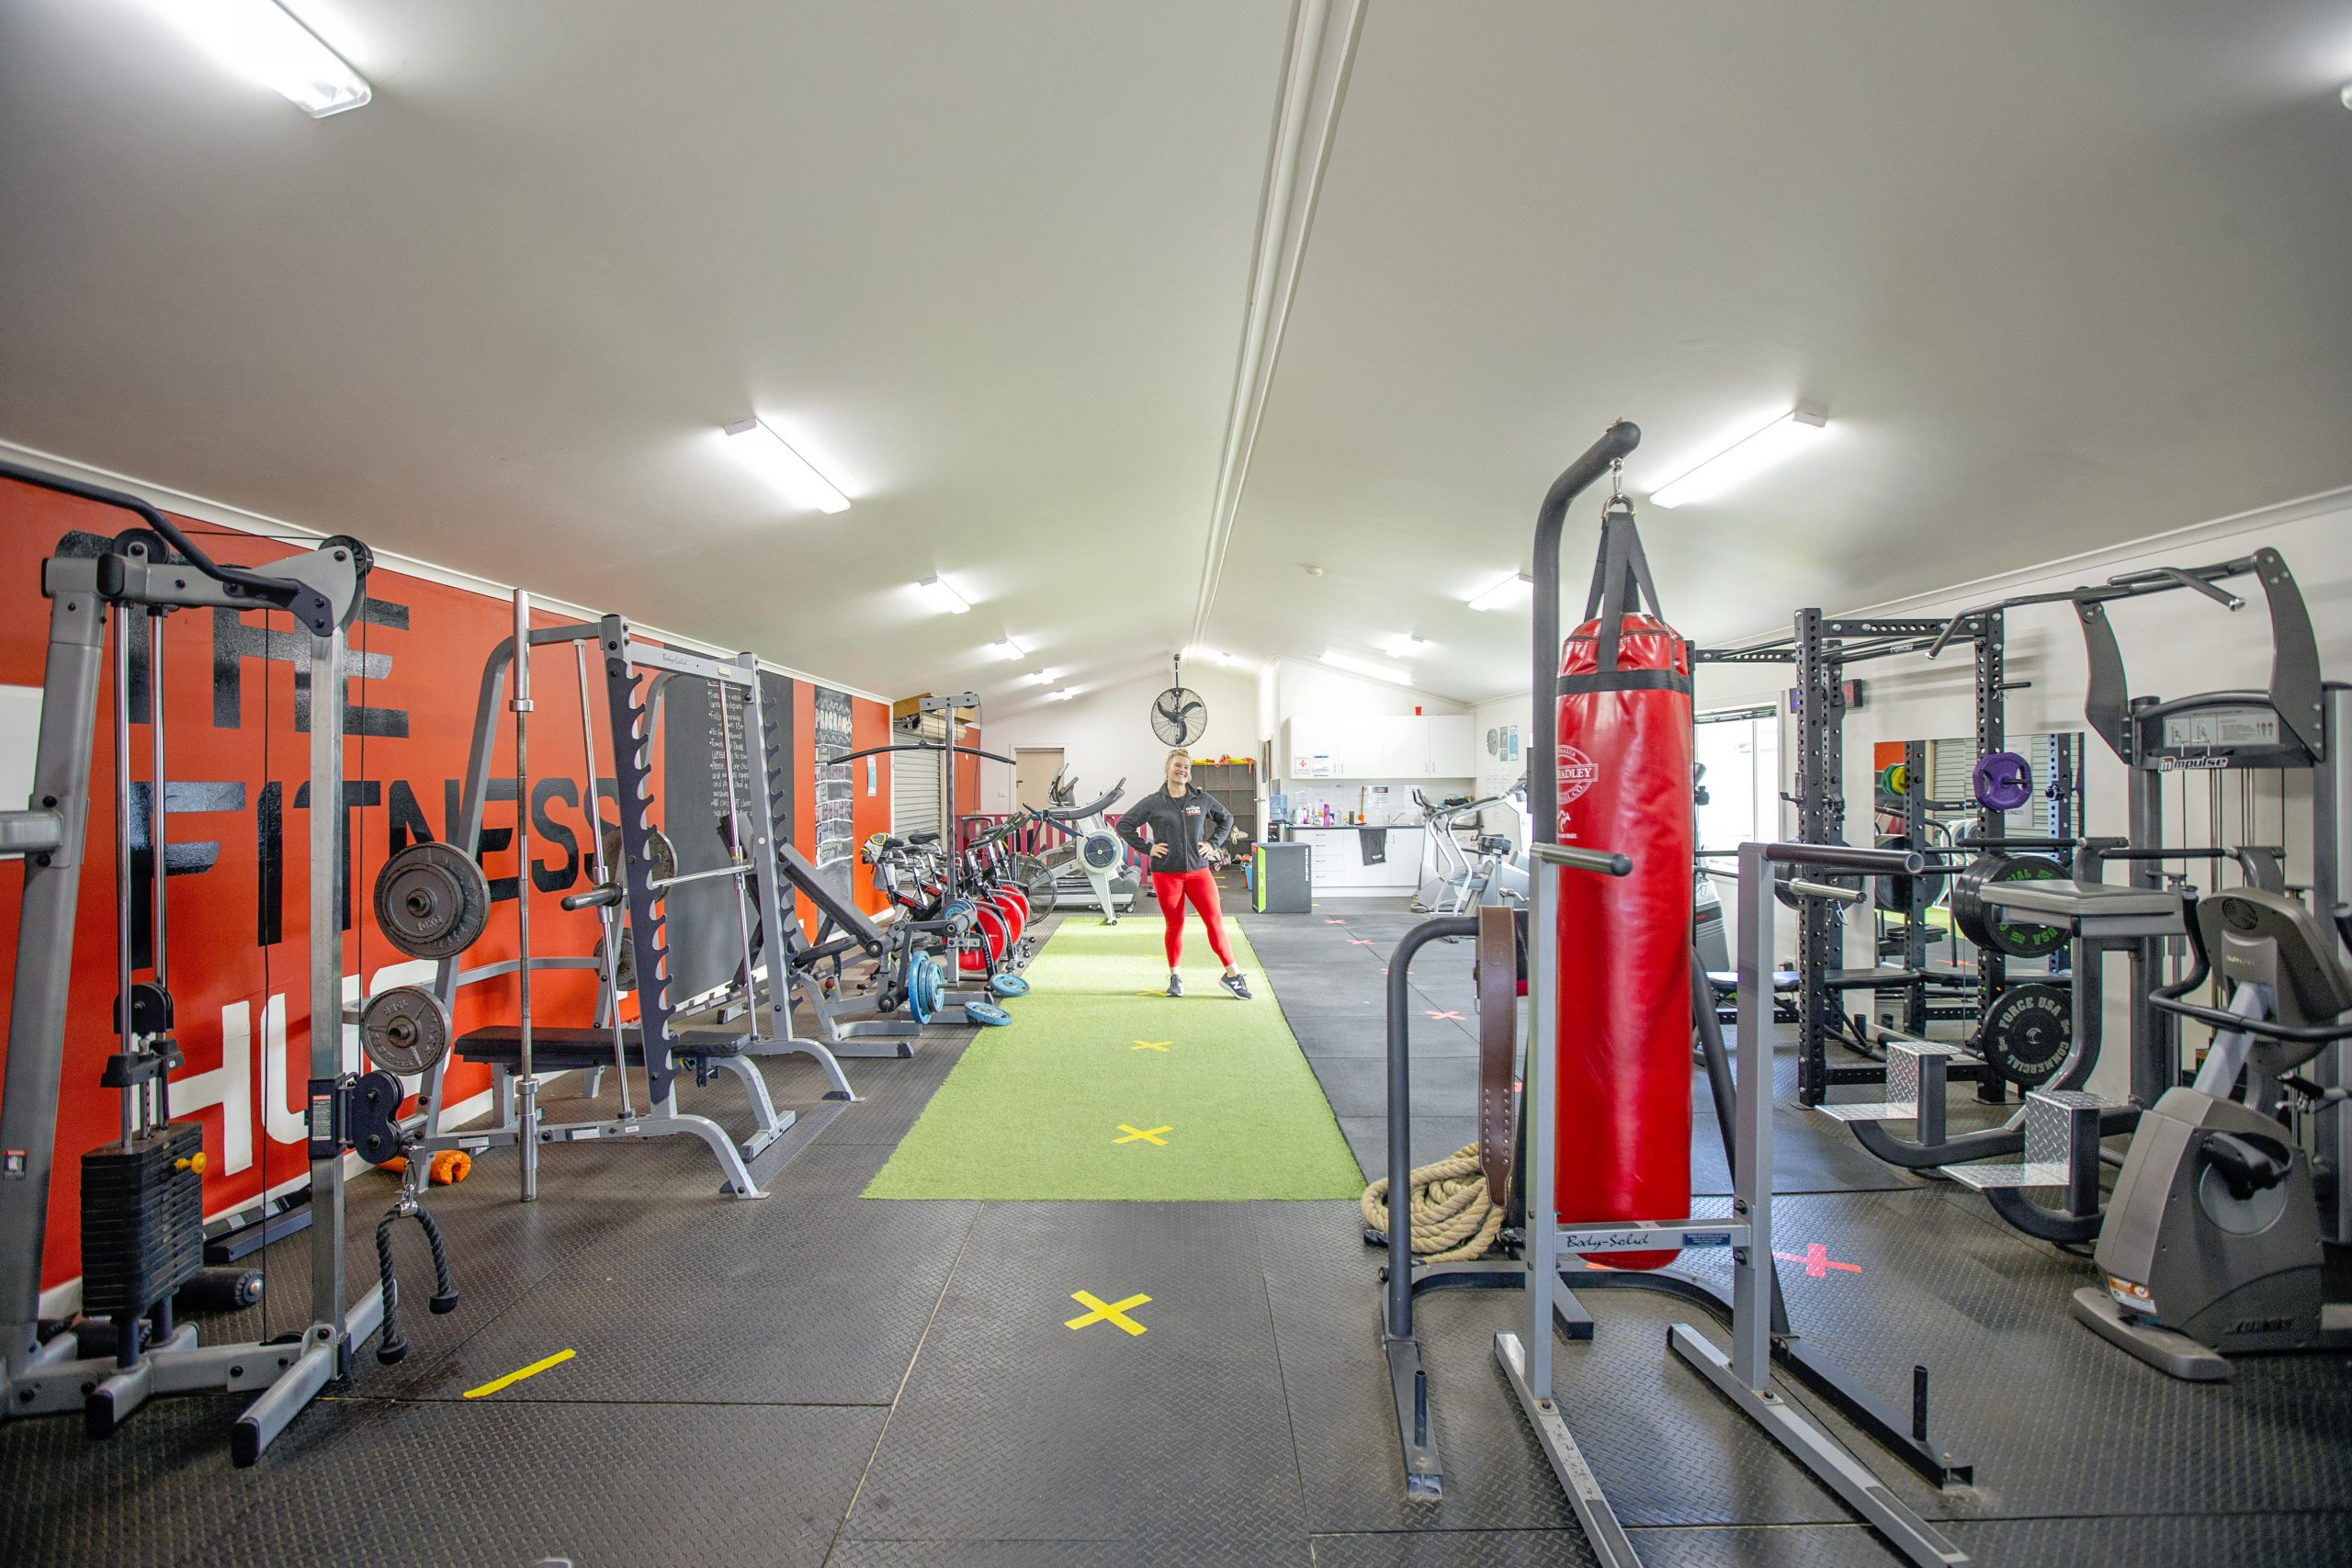 The Fitness Hubs - Kingston gym